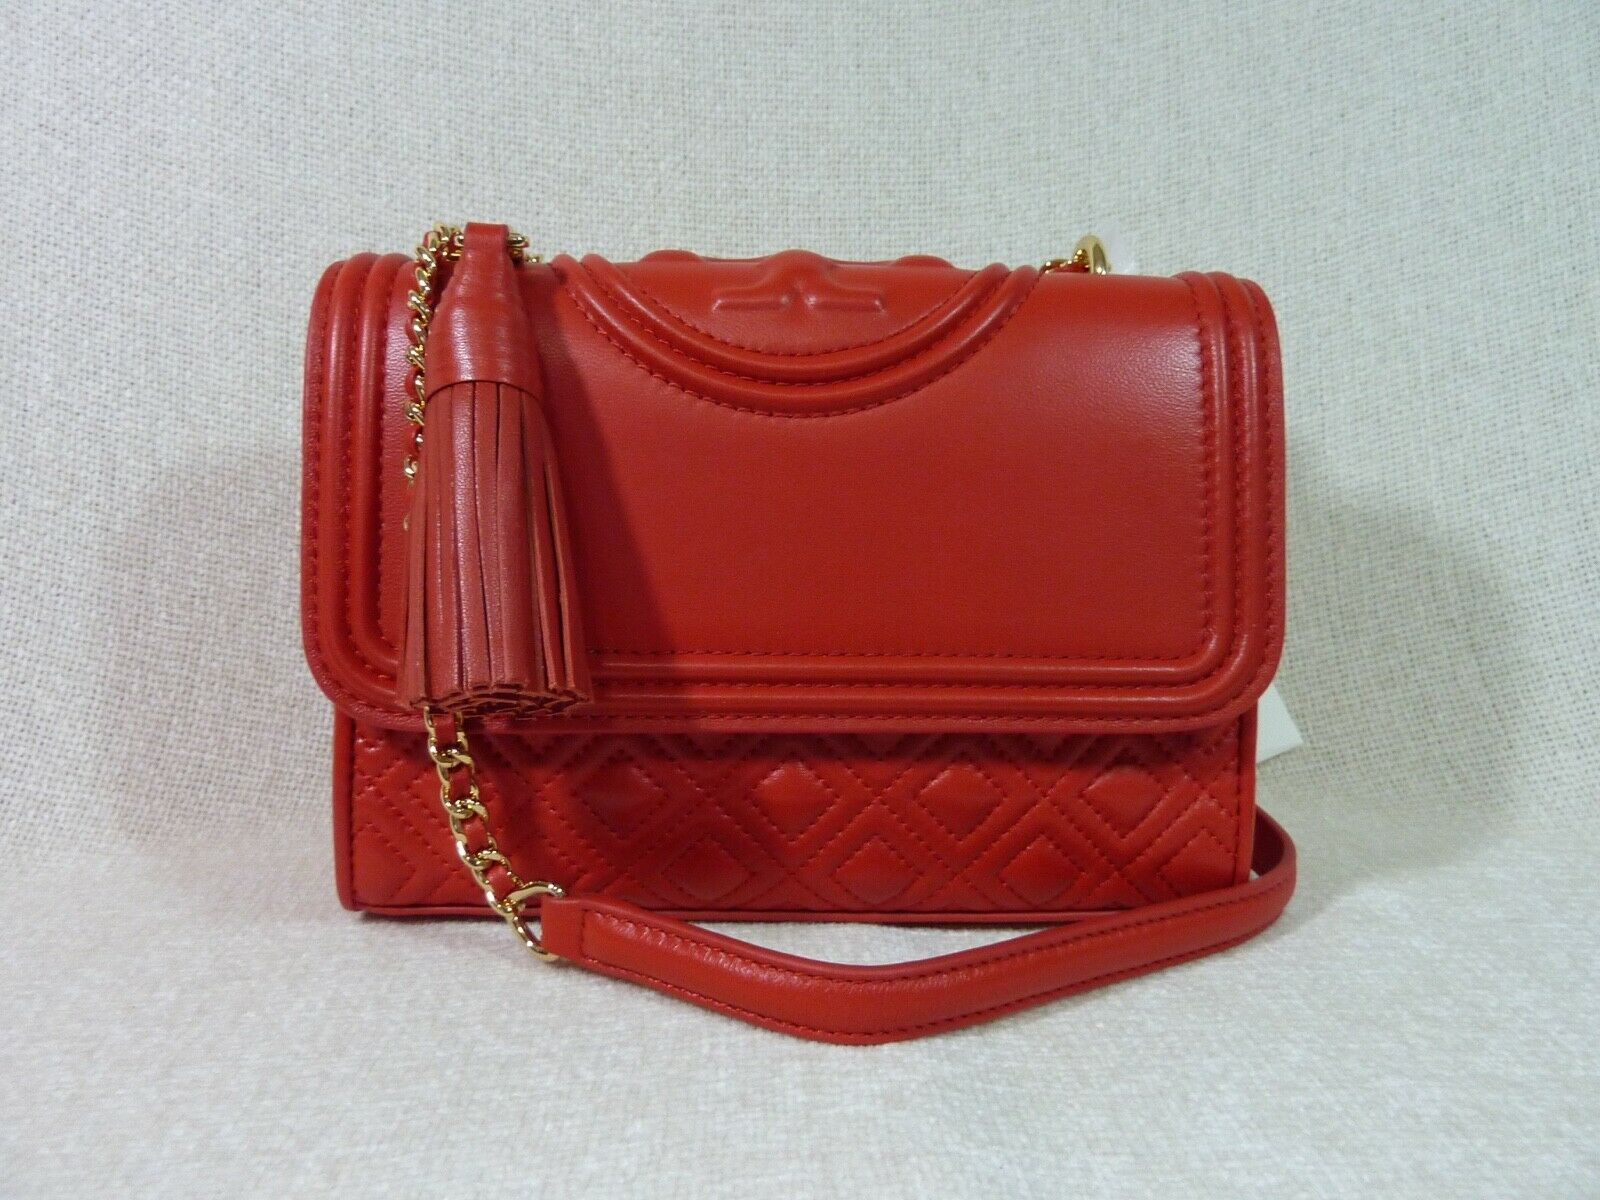 NWT Tory Burch Red Volcano Leather Small Fleming Convertible Bag $450